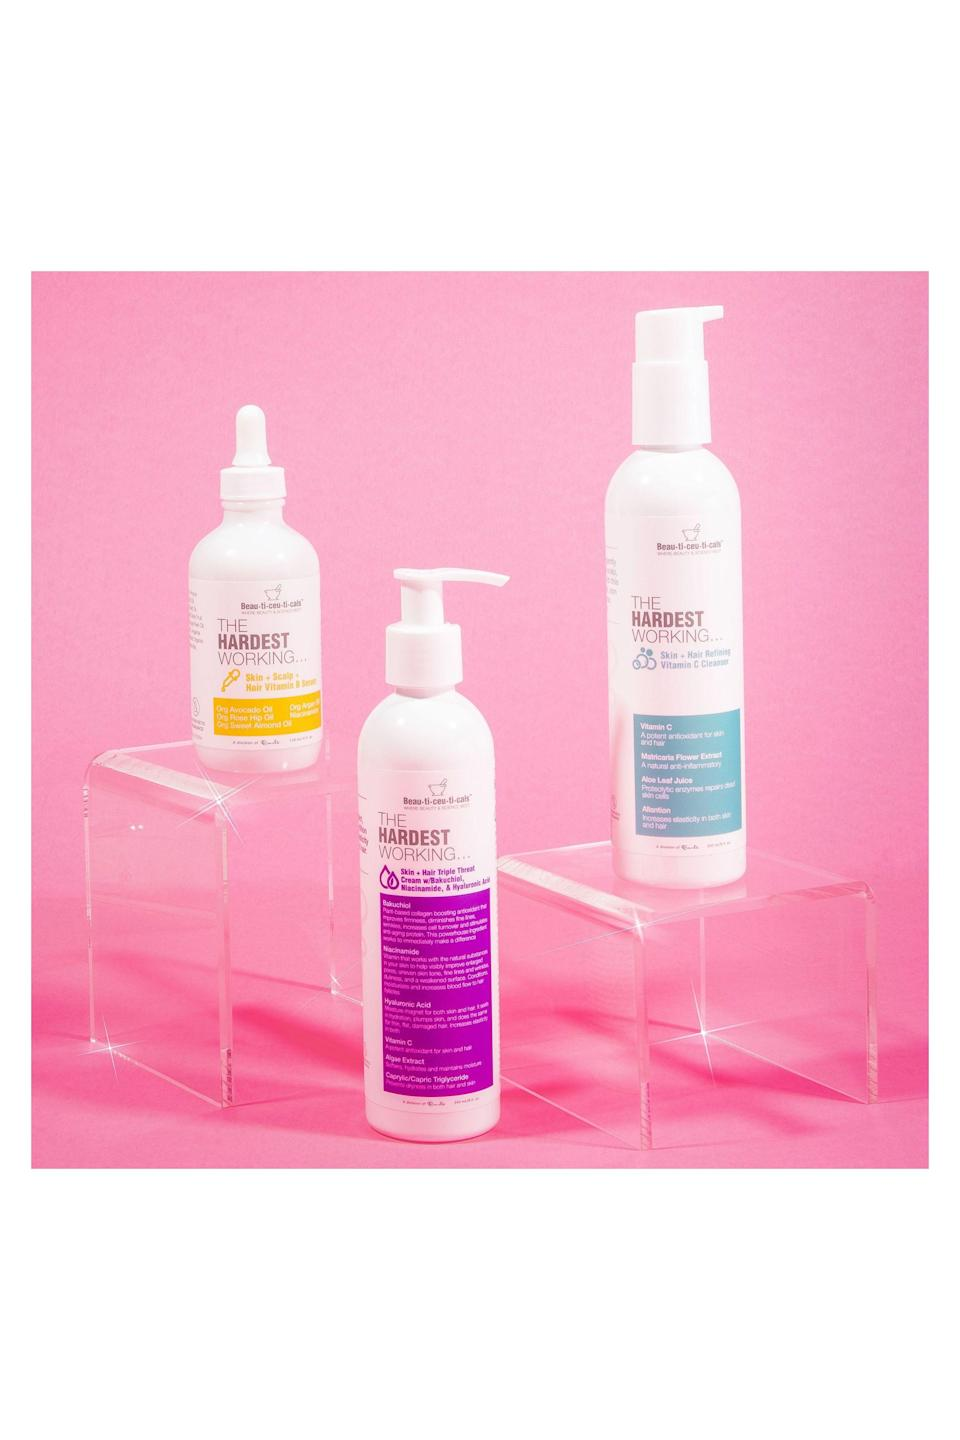 """<p><strong>Curlbox</strong></p><p>curlbox.com</p><p><strong>$50.00</strong></p><p><a href=""""https://curlbox.com/products/curlbox-diamond-beau-ti-ceu-ti-cals"""" rel=""""nofollow noopener"""" target=""""_blank"""" data-ylk=""""slk:Shop Now"""" class=""""link rapid-noclick-resp"""">Shop Now</a></p><p>Most <a href=""""https://www.elle.com/beauty/hair/g26066152/best-curl-creams/"""" rel=""""nofollow noopener"""" target=""""_blank"""" data-ylk=""""slk:curly-haired"""" class=""""link rapid-noclick-resp"""">curly-haired</a> girls are product junkies by nature; natural hair requires care in the form of time, attention and lots of products. The Curl Box is the most popular natural hair box subscription that allows you to try out new hair products every wash day. Each month's box is filled with hair care products from well-known brands and a few goodies from newer or lesser-known brands to keep your curls popping.</p>"""